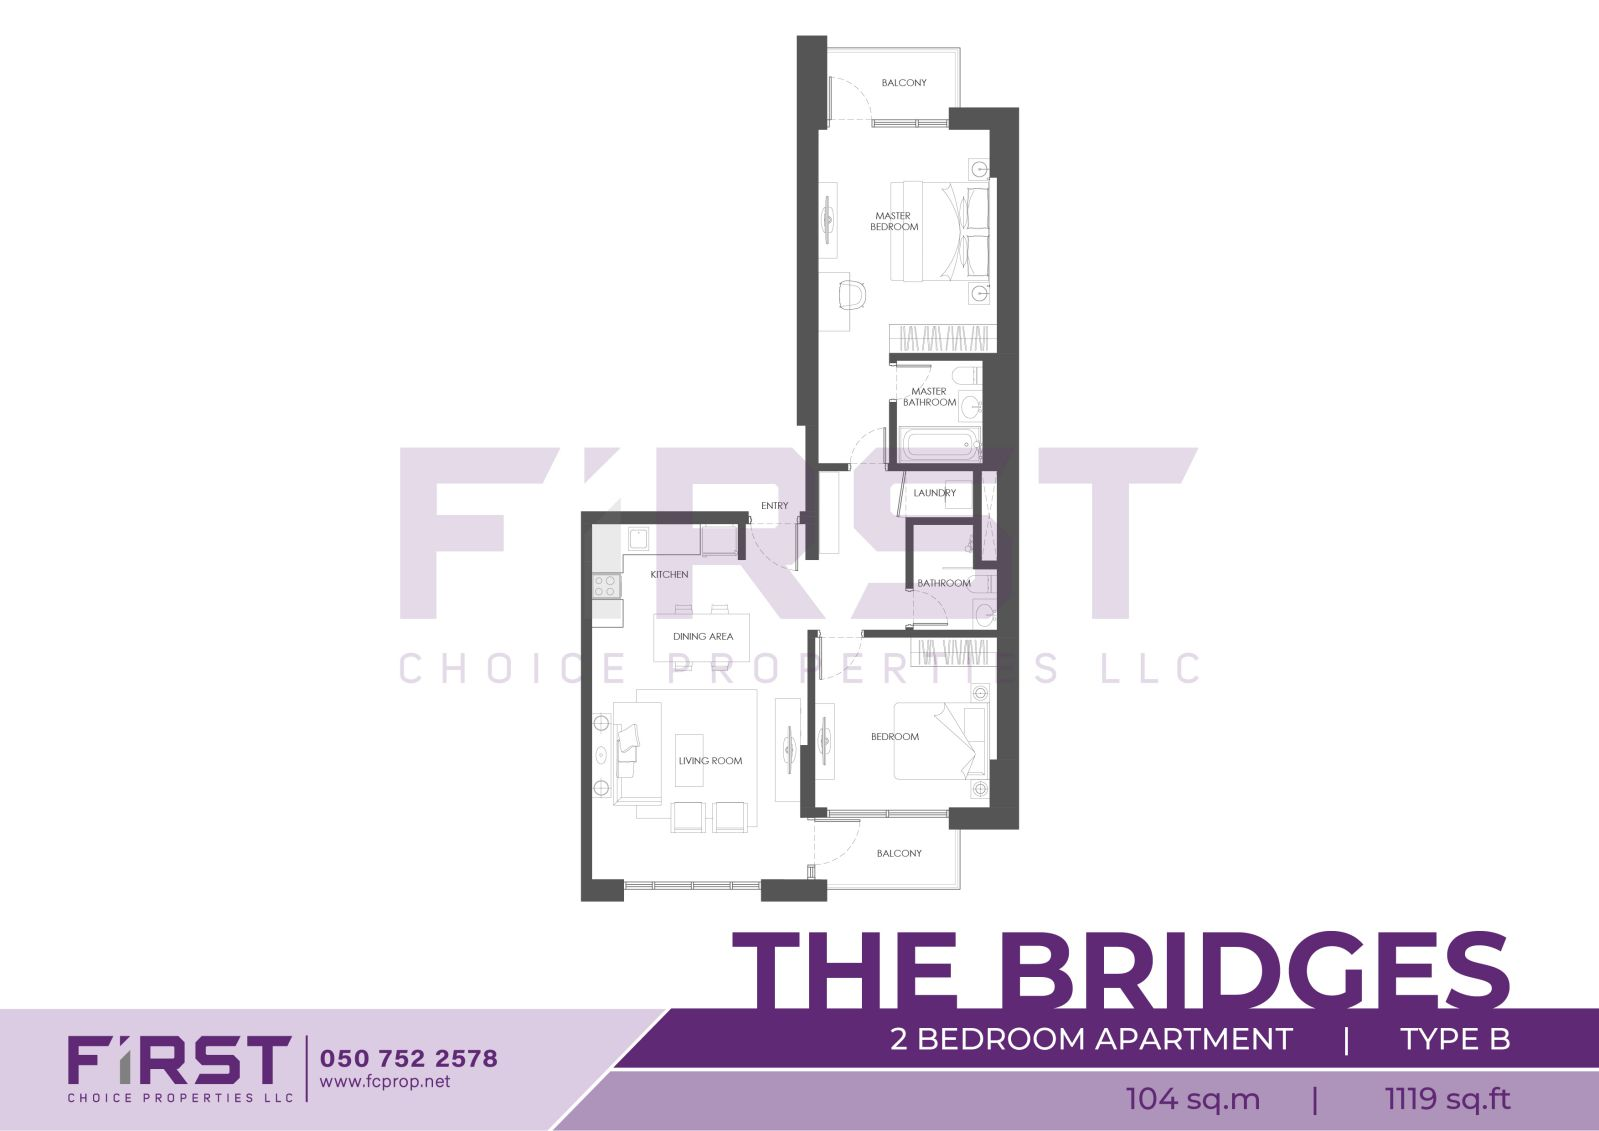 Floor Plan of 2 Bedroom Apartment Type B in The Bridges Al Reem Island Abu Dhabi UAE 104 sq.m 1119 sq.ft.jpg